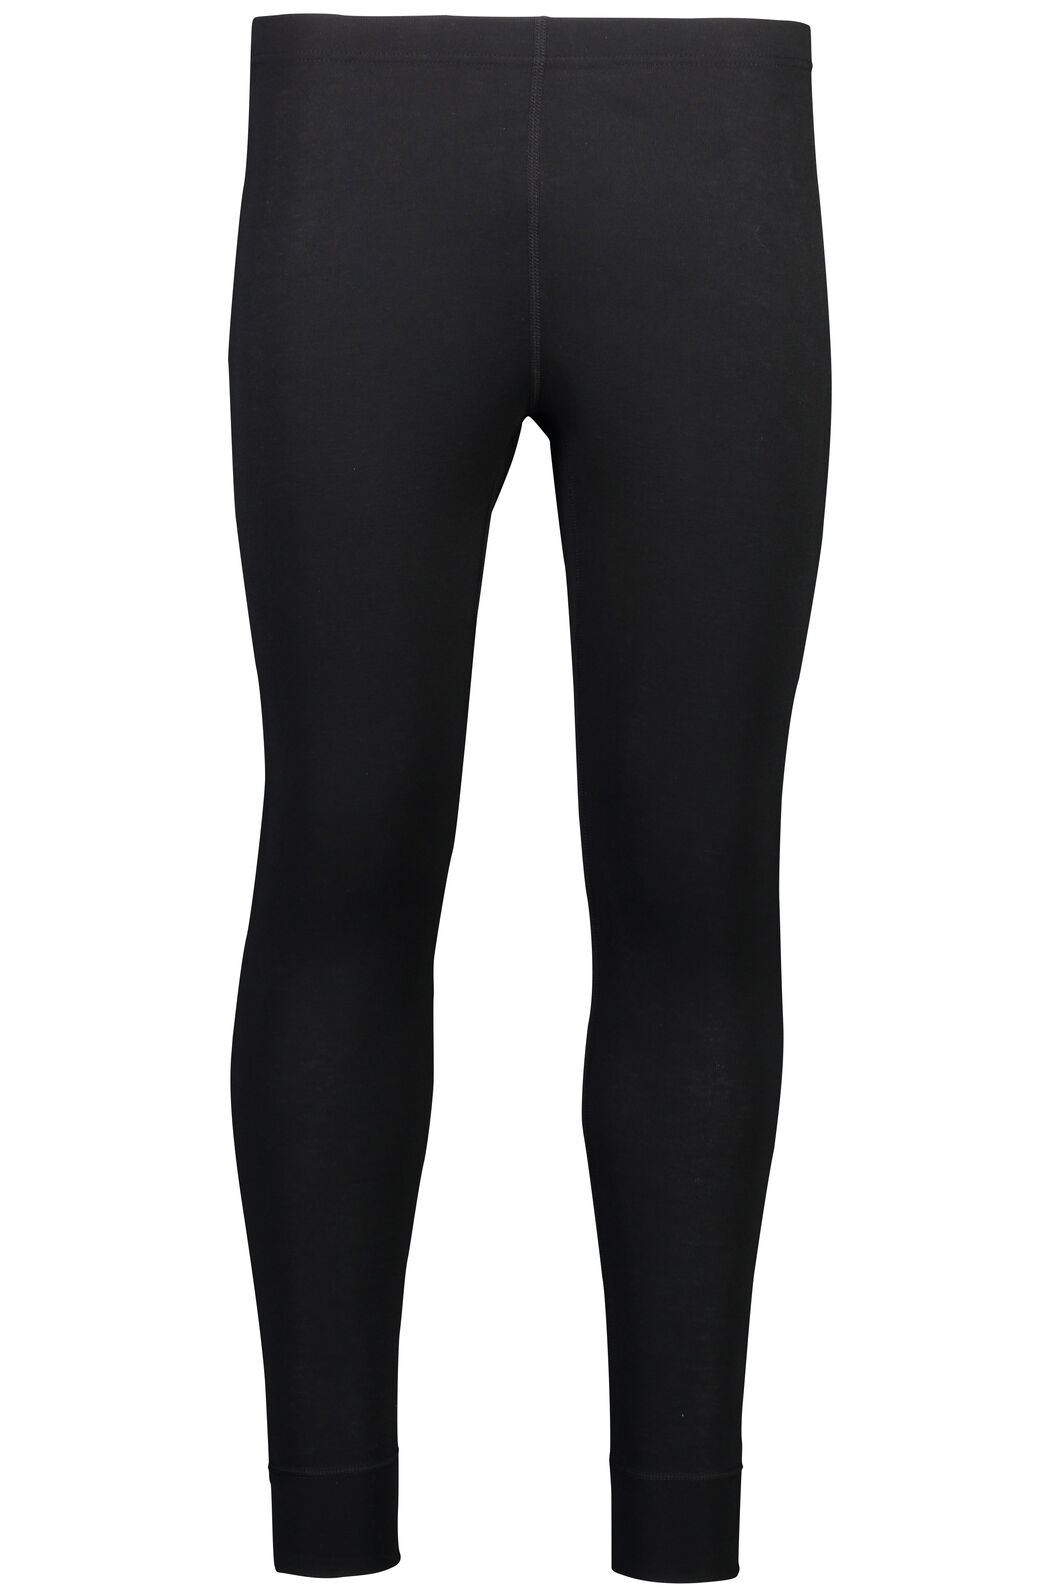 Macpac Geothermal Long Johns - Unisex, Black, hi-res